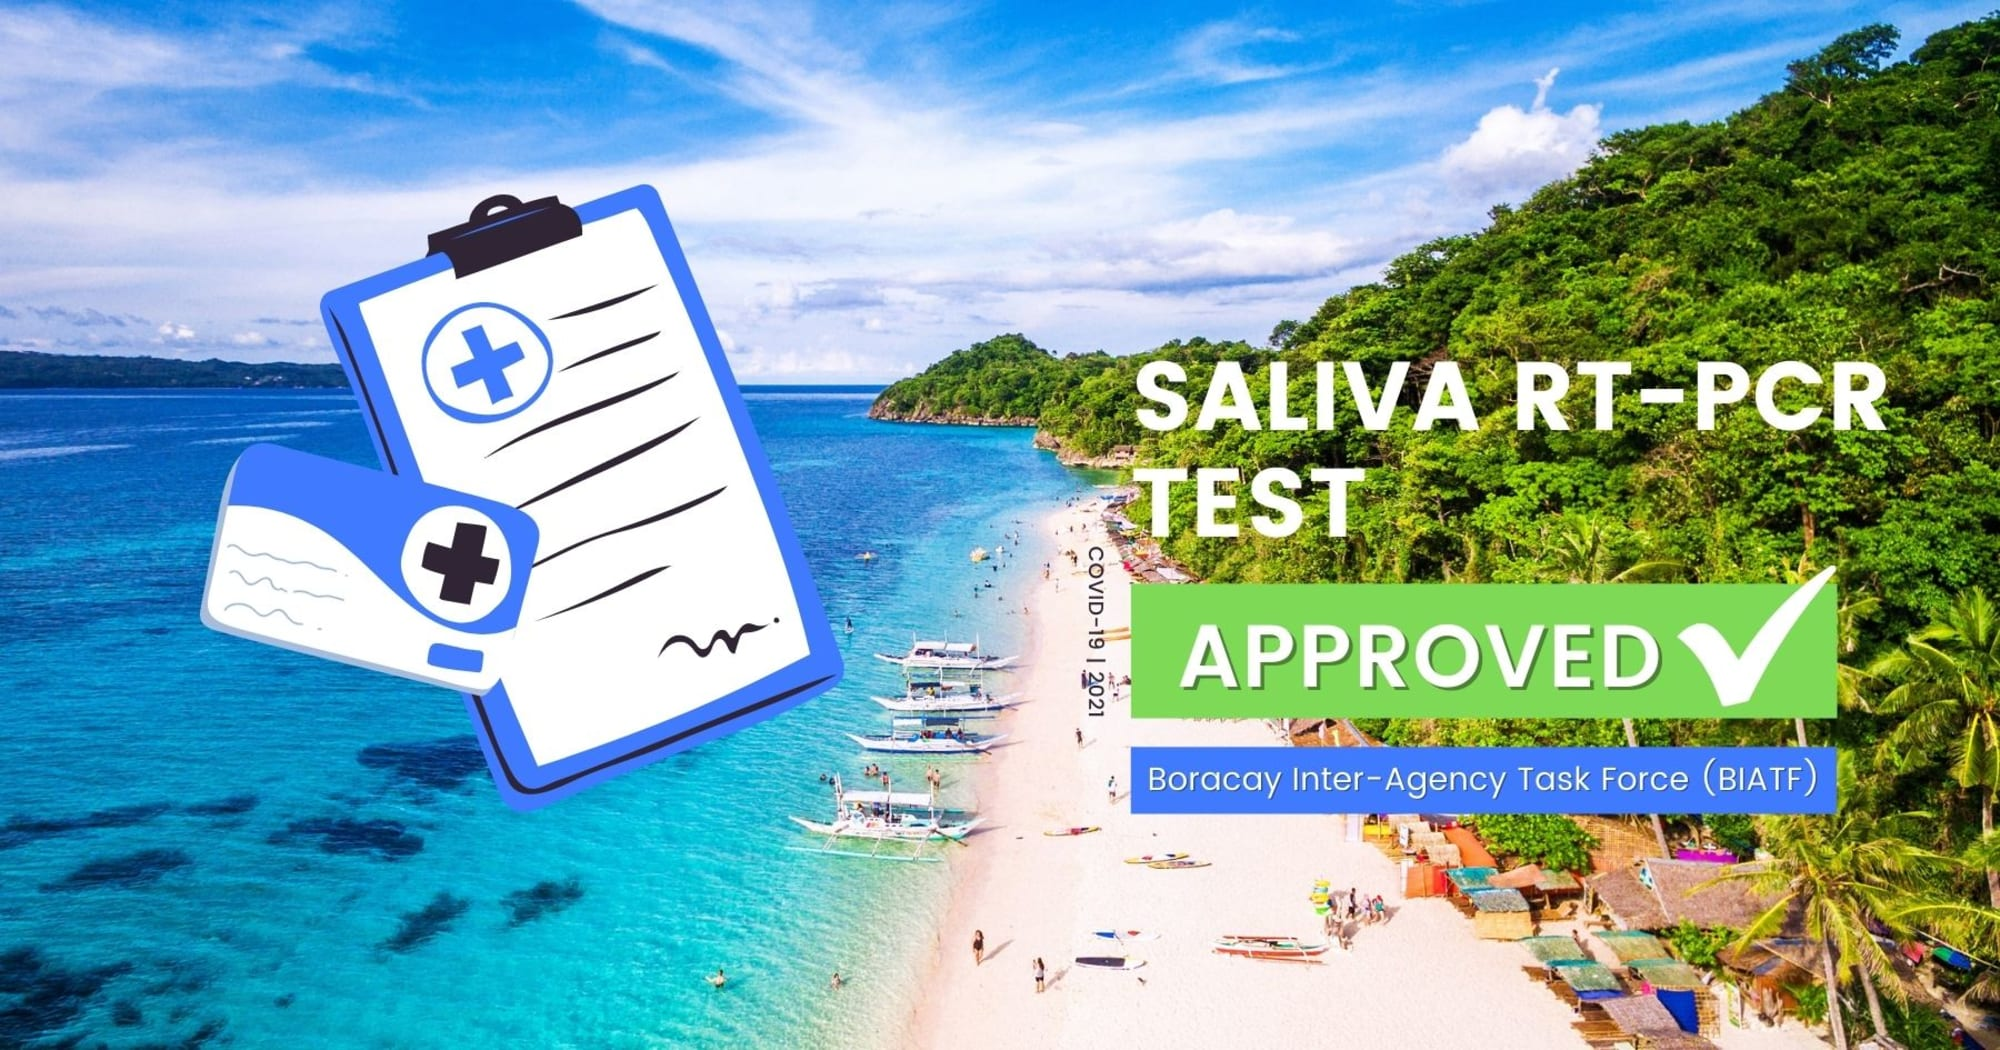 Saliva RT-PCR Now Approved to All Local Tourist bound to Boracay - BIATF